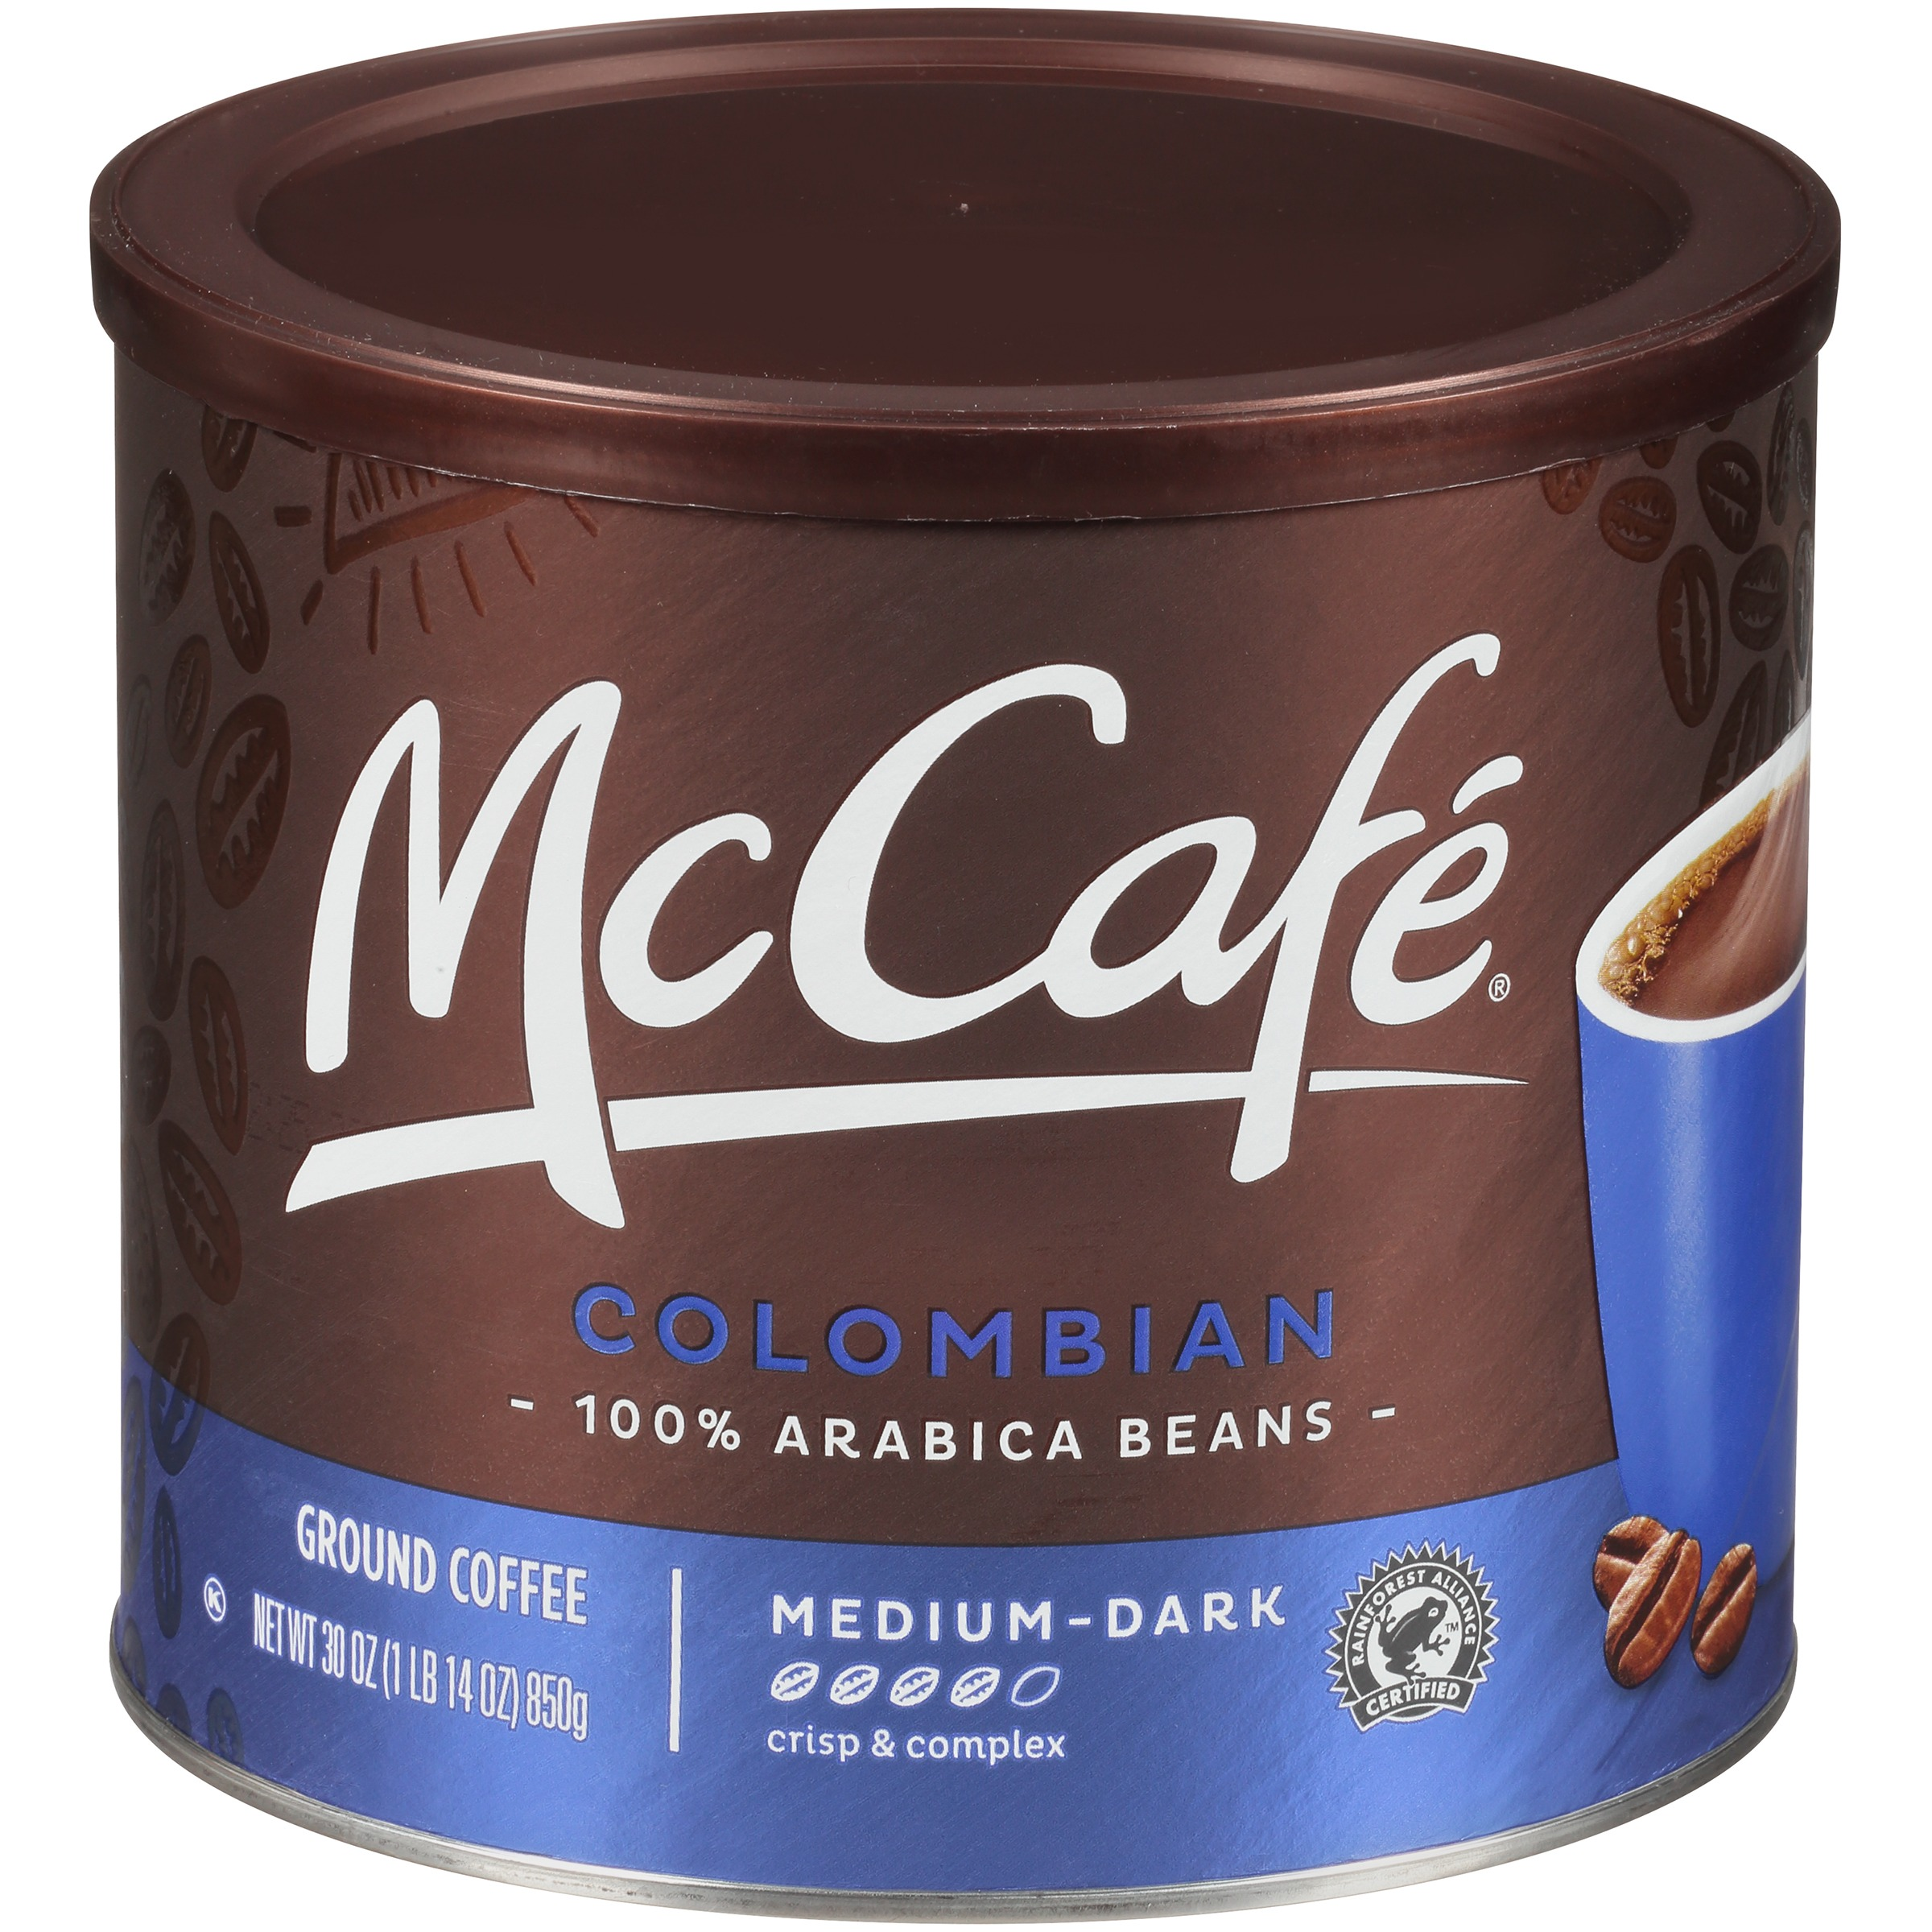 McCafé Colombian Ground Coffee 30 oz. Canister